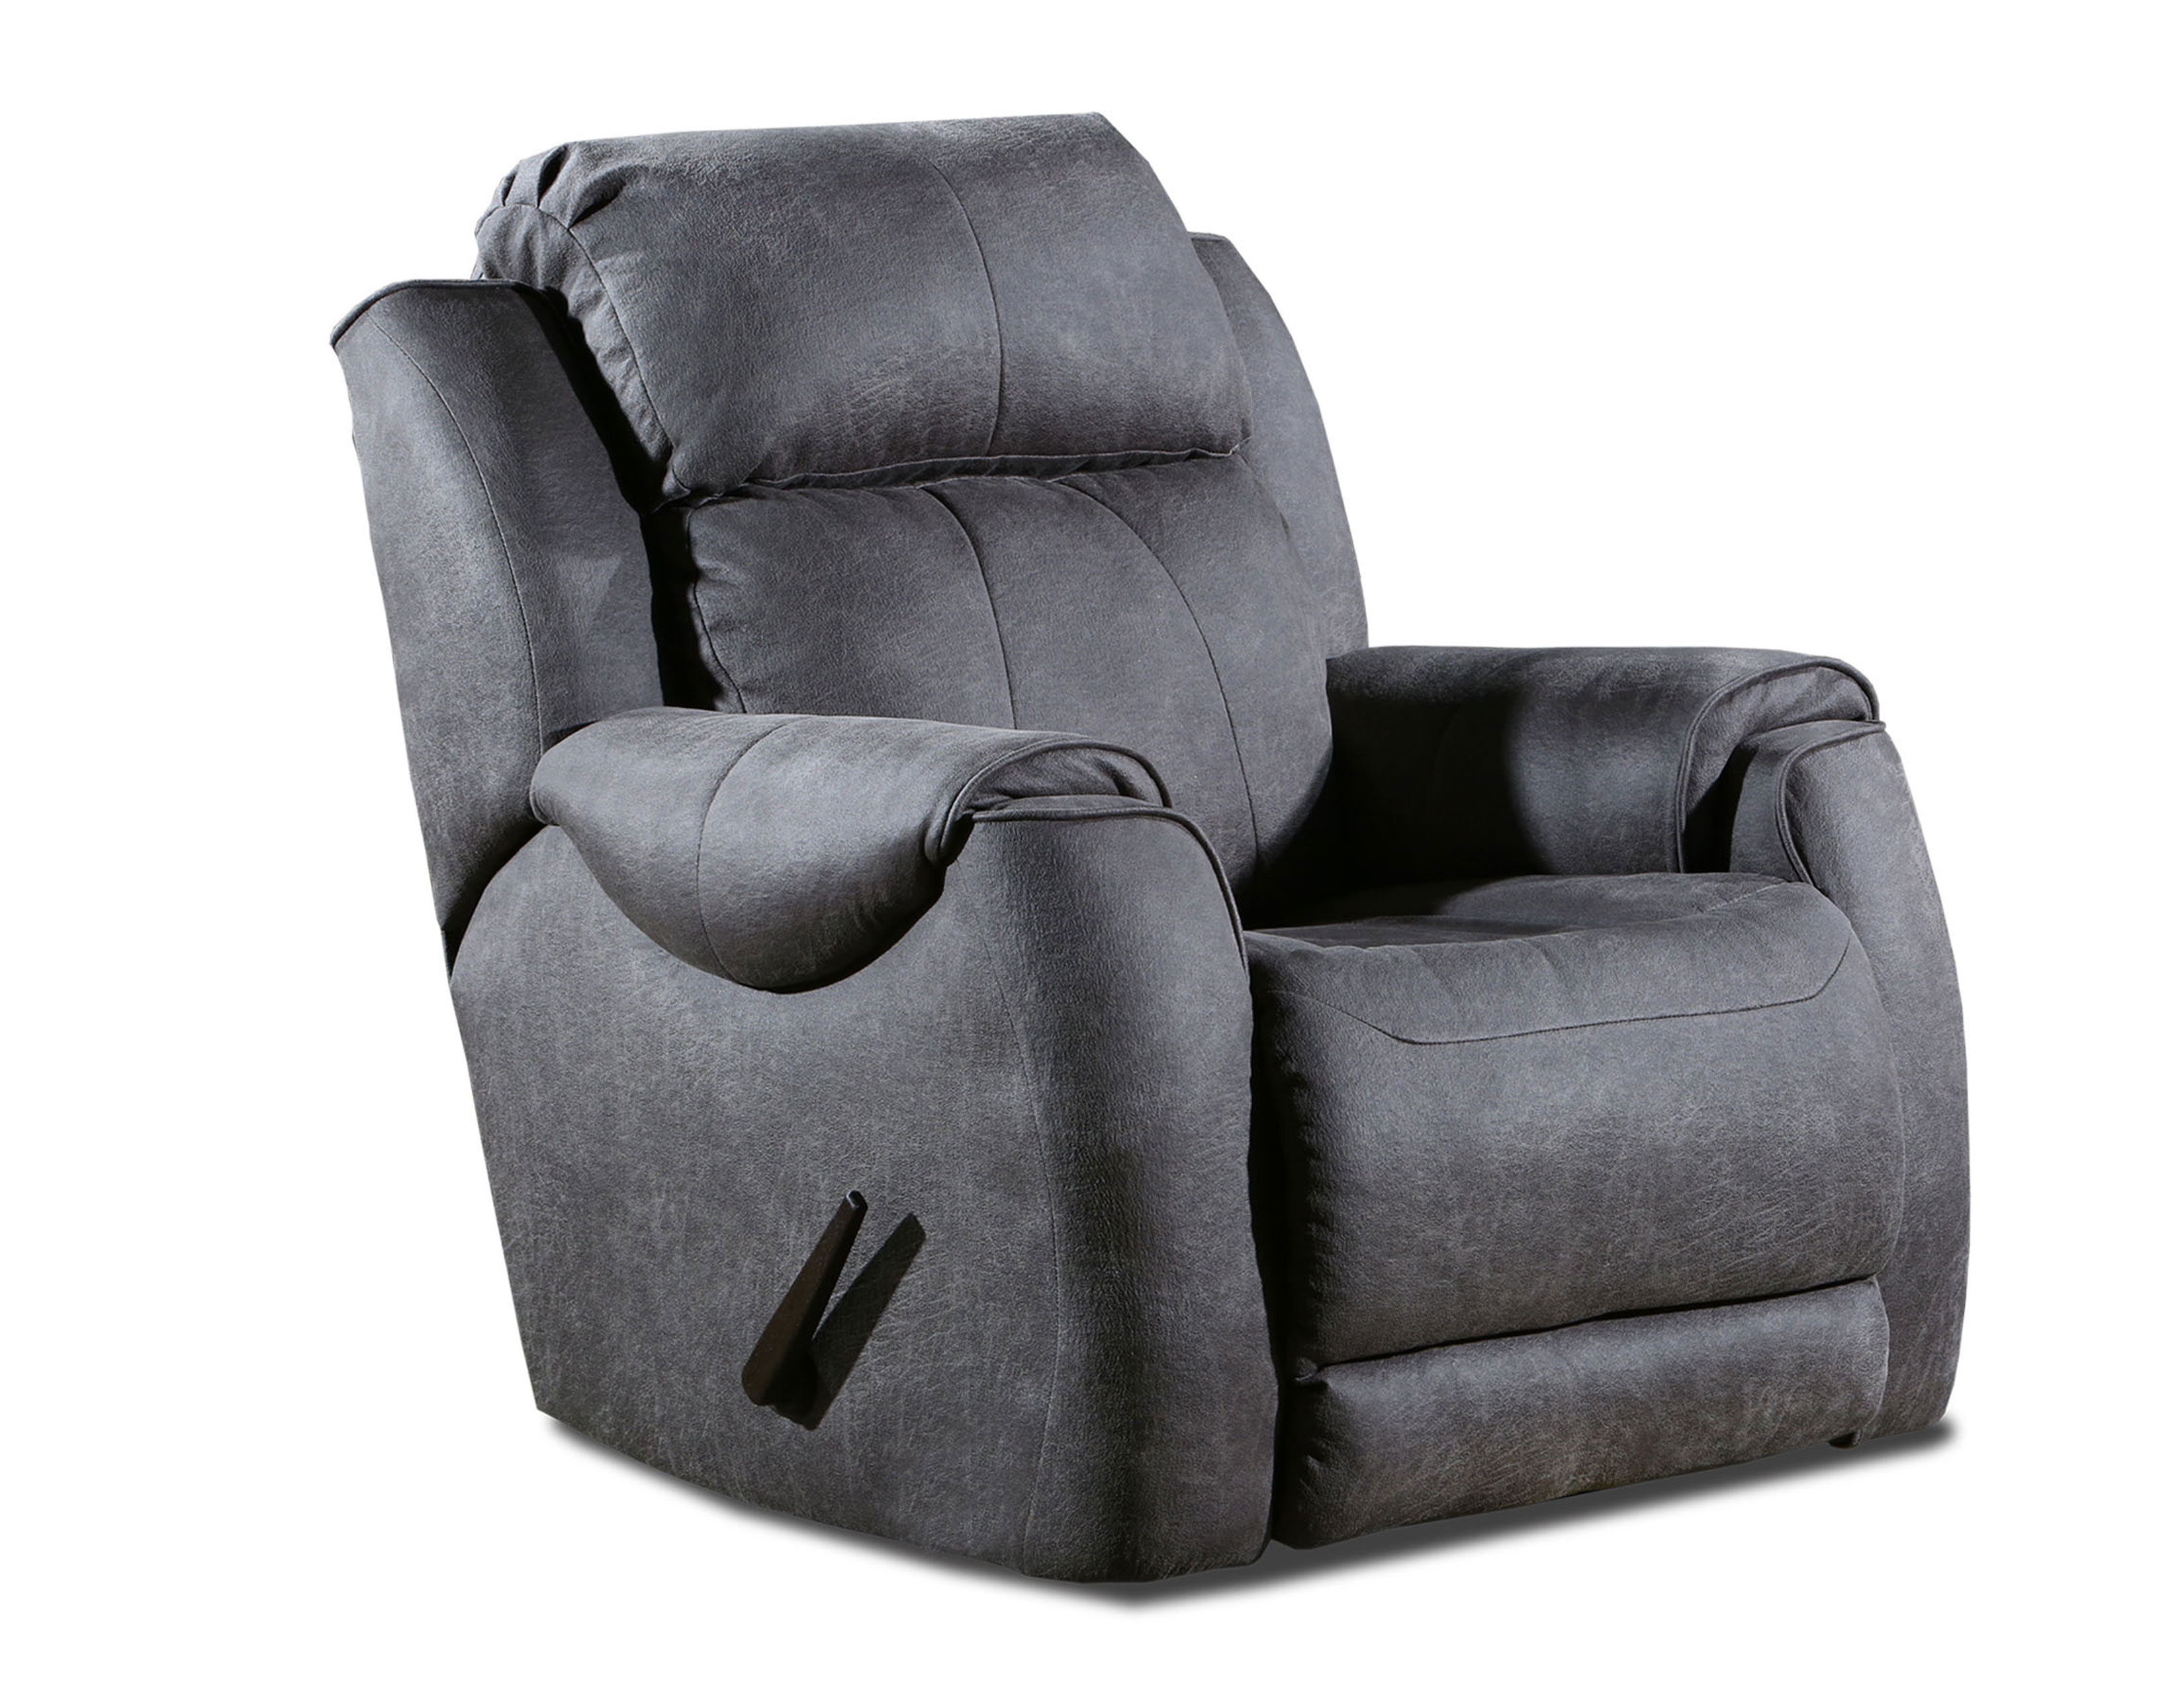 Safe Bet Double Reclining Sofa 140 Fabrics And Sofas And